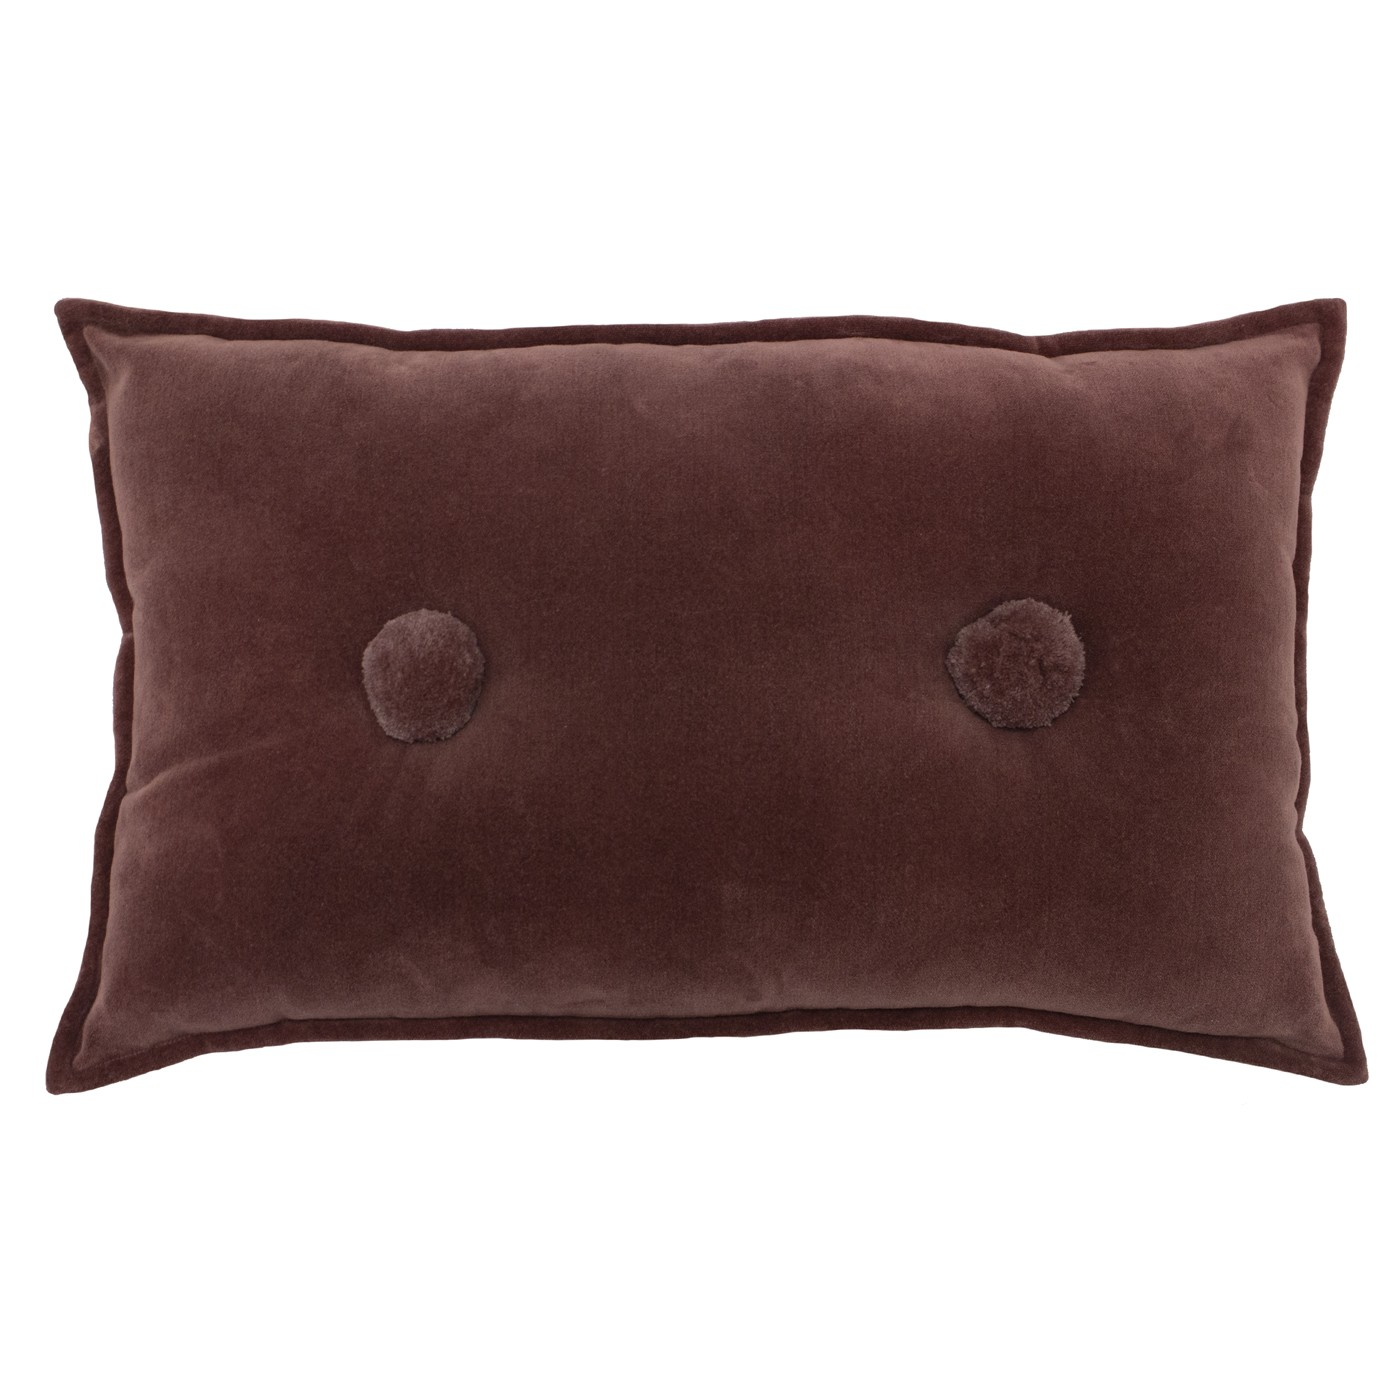 Bobble Cushion, Rock Rose by furn.